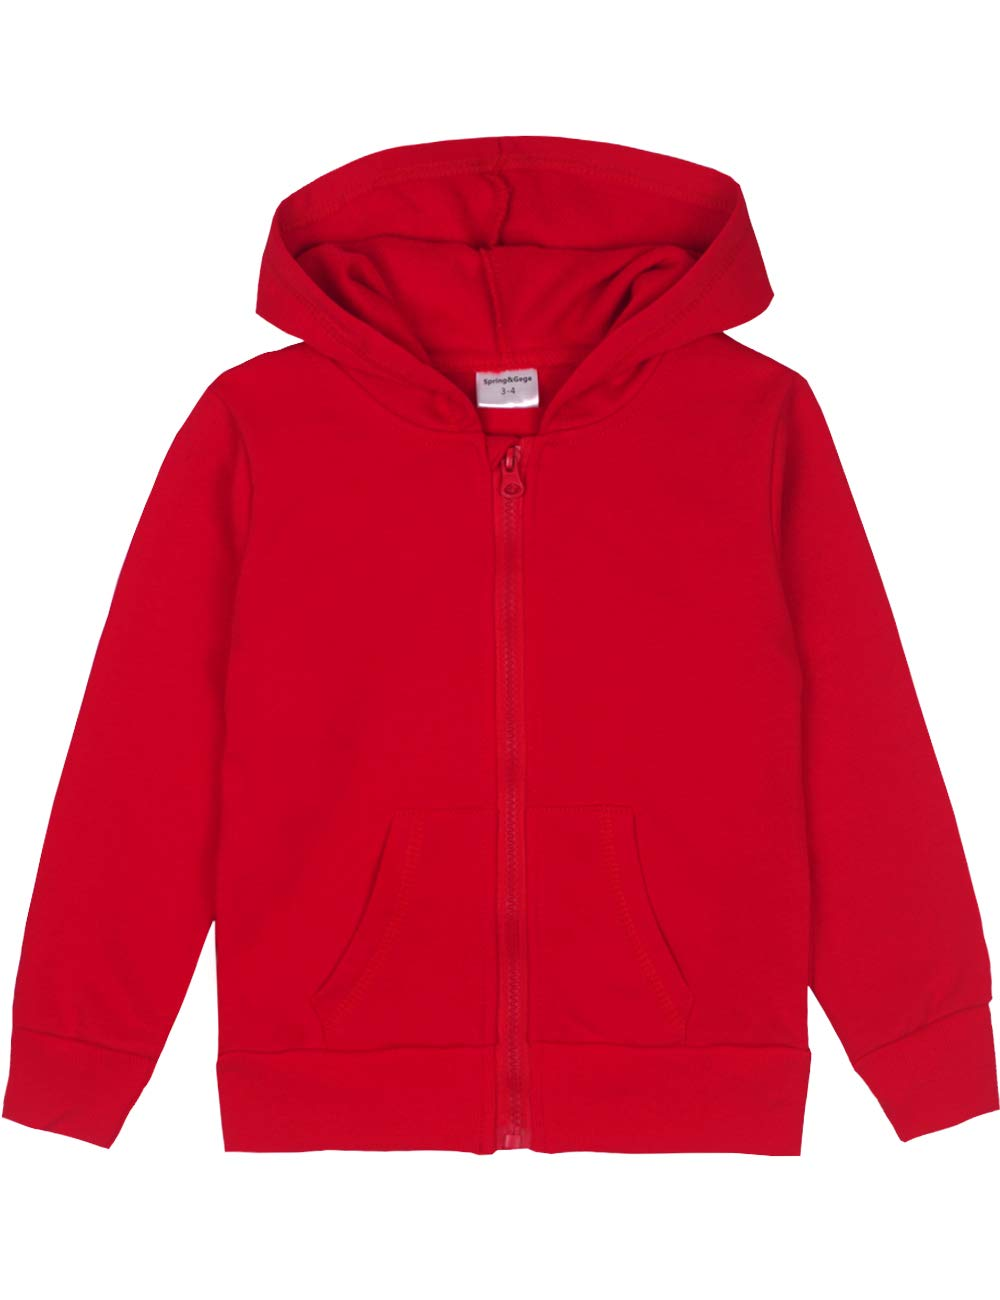 3-12 Years Spring/&Gege Youth Solid Classic Hoodies Soft Hooded Sweatshirts for Children